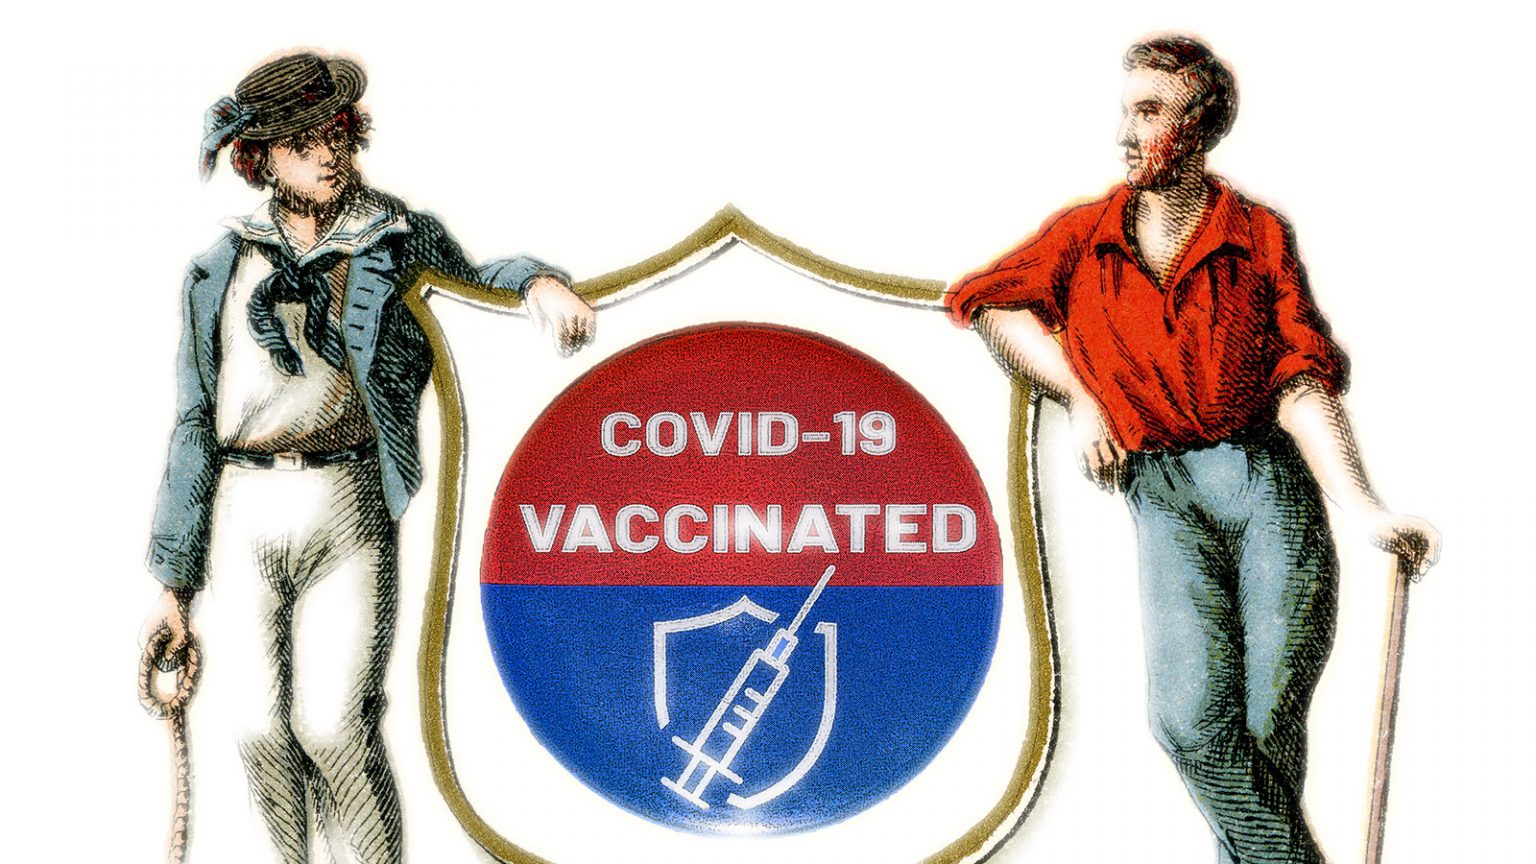 An illustration with two figures from the Wisconsin coat of arms leaning on a shield with a button reading COVID-19 vaccinated.